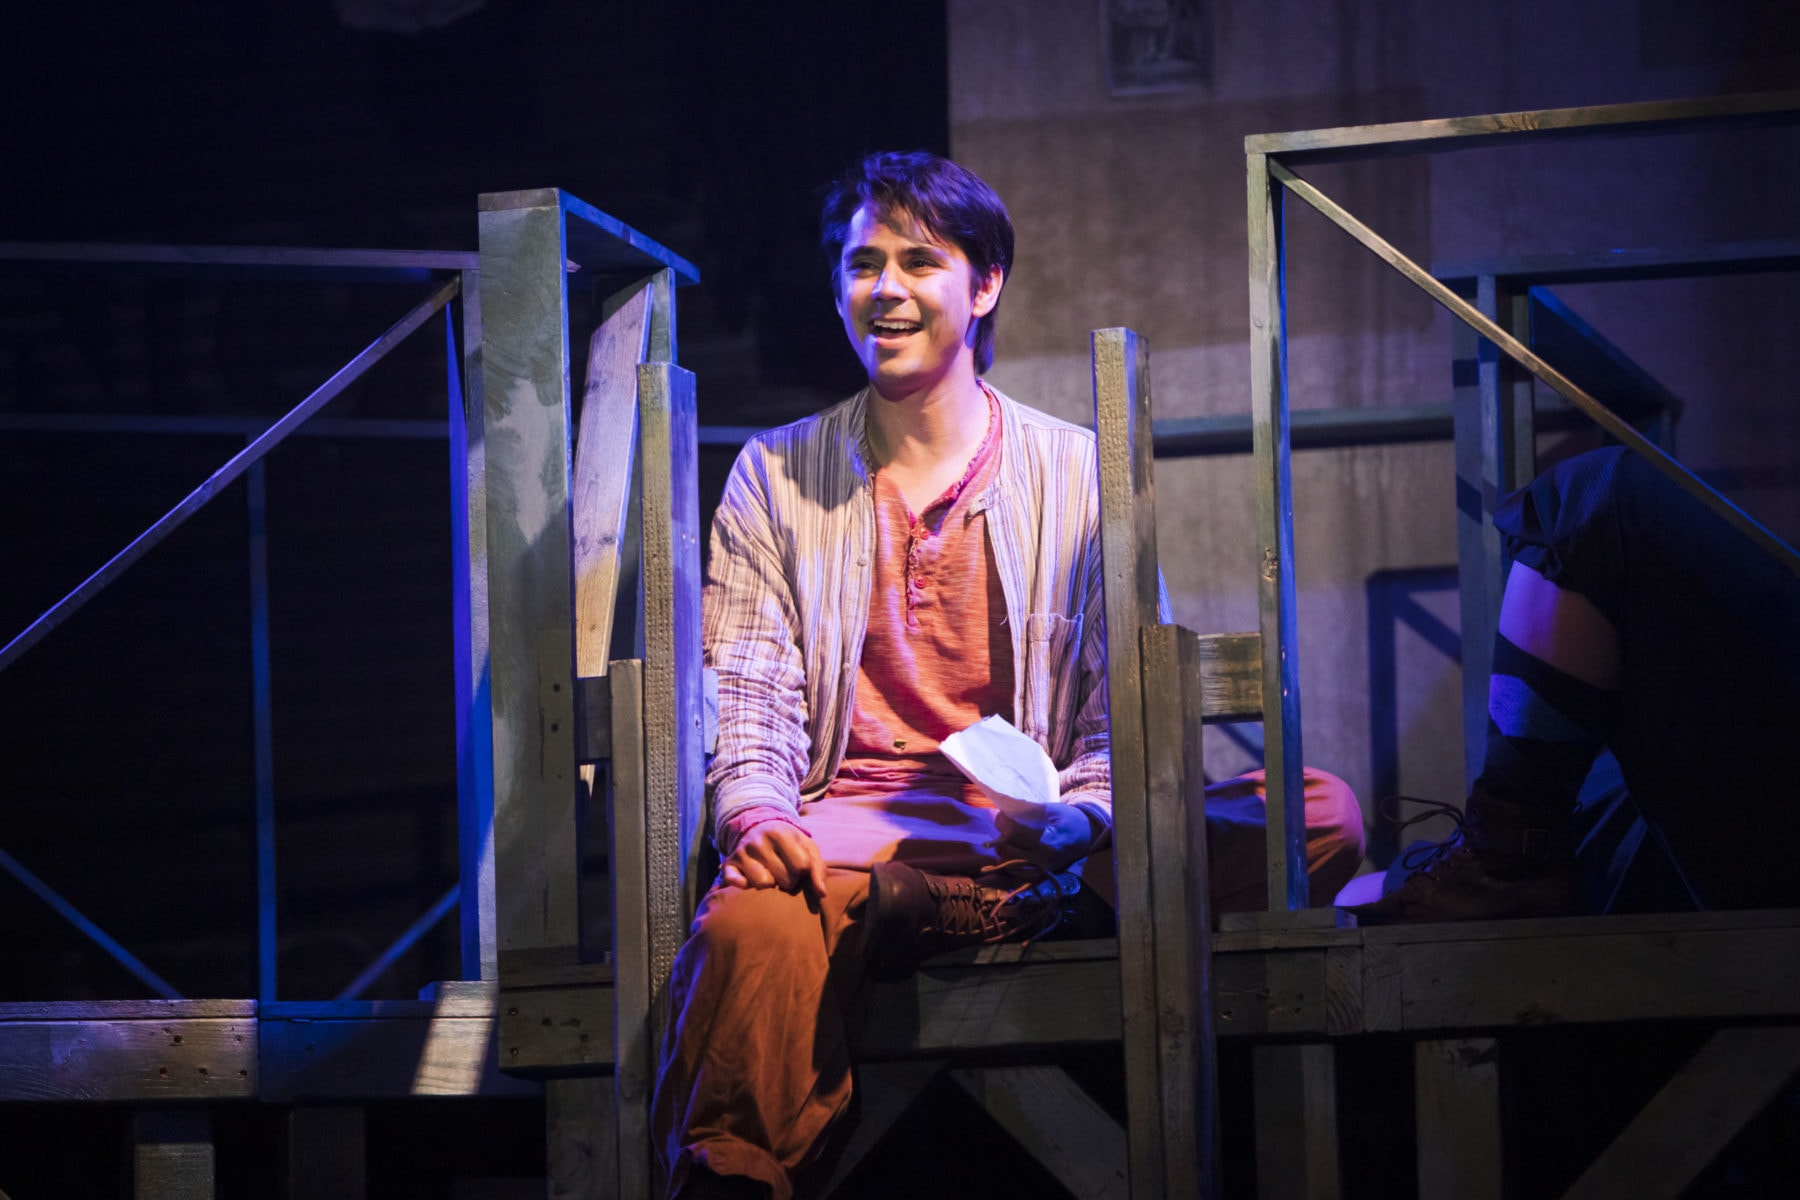 """Stephen Kanaski, as Crutchie, Writes a letter from the refuge in """"Newsies"""" at Hillbarn Theatre."""